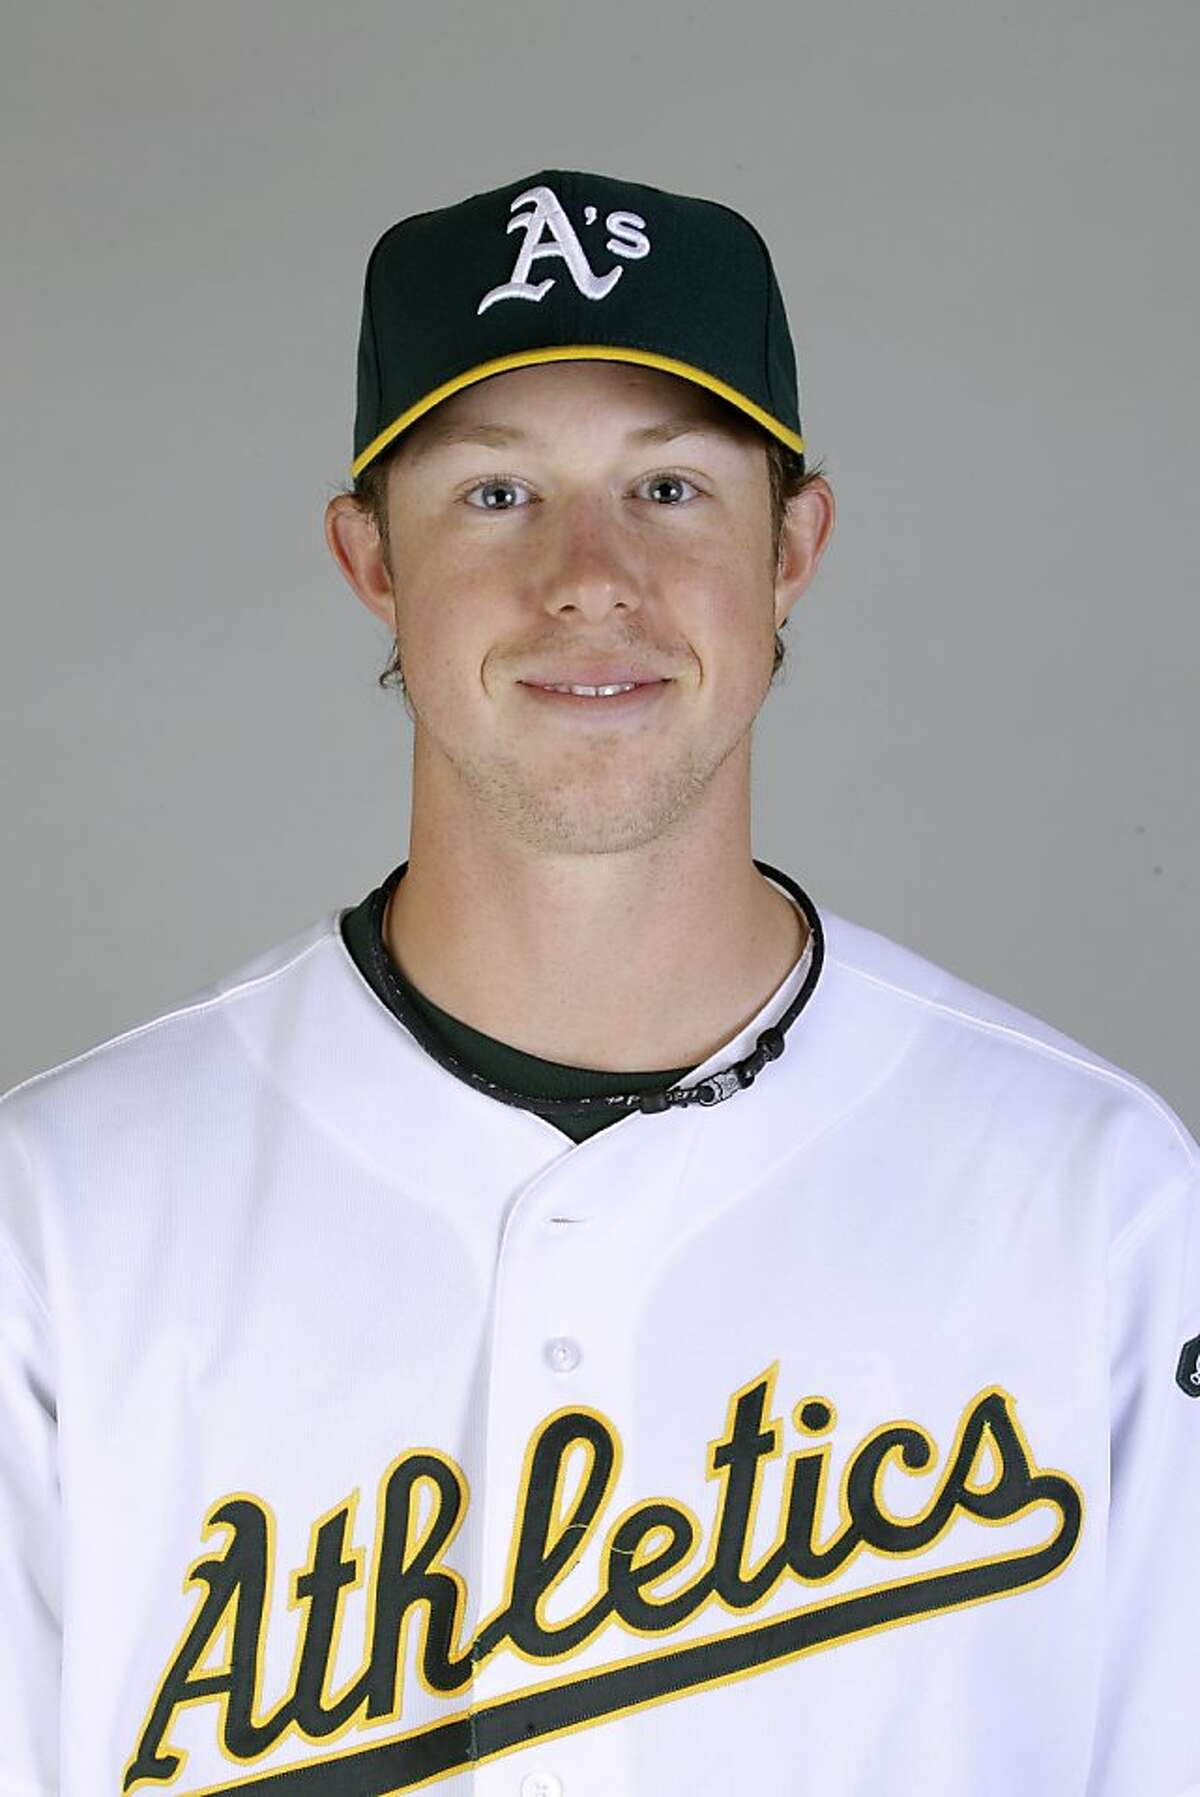 This is a 2011 photo of Trystan Magnuson of the Oakland Athletics baseball team. This image reflects the Oakland Athletics active roster as of Thursday, Feb. 24, 2011 when this image was taken.